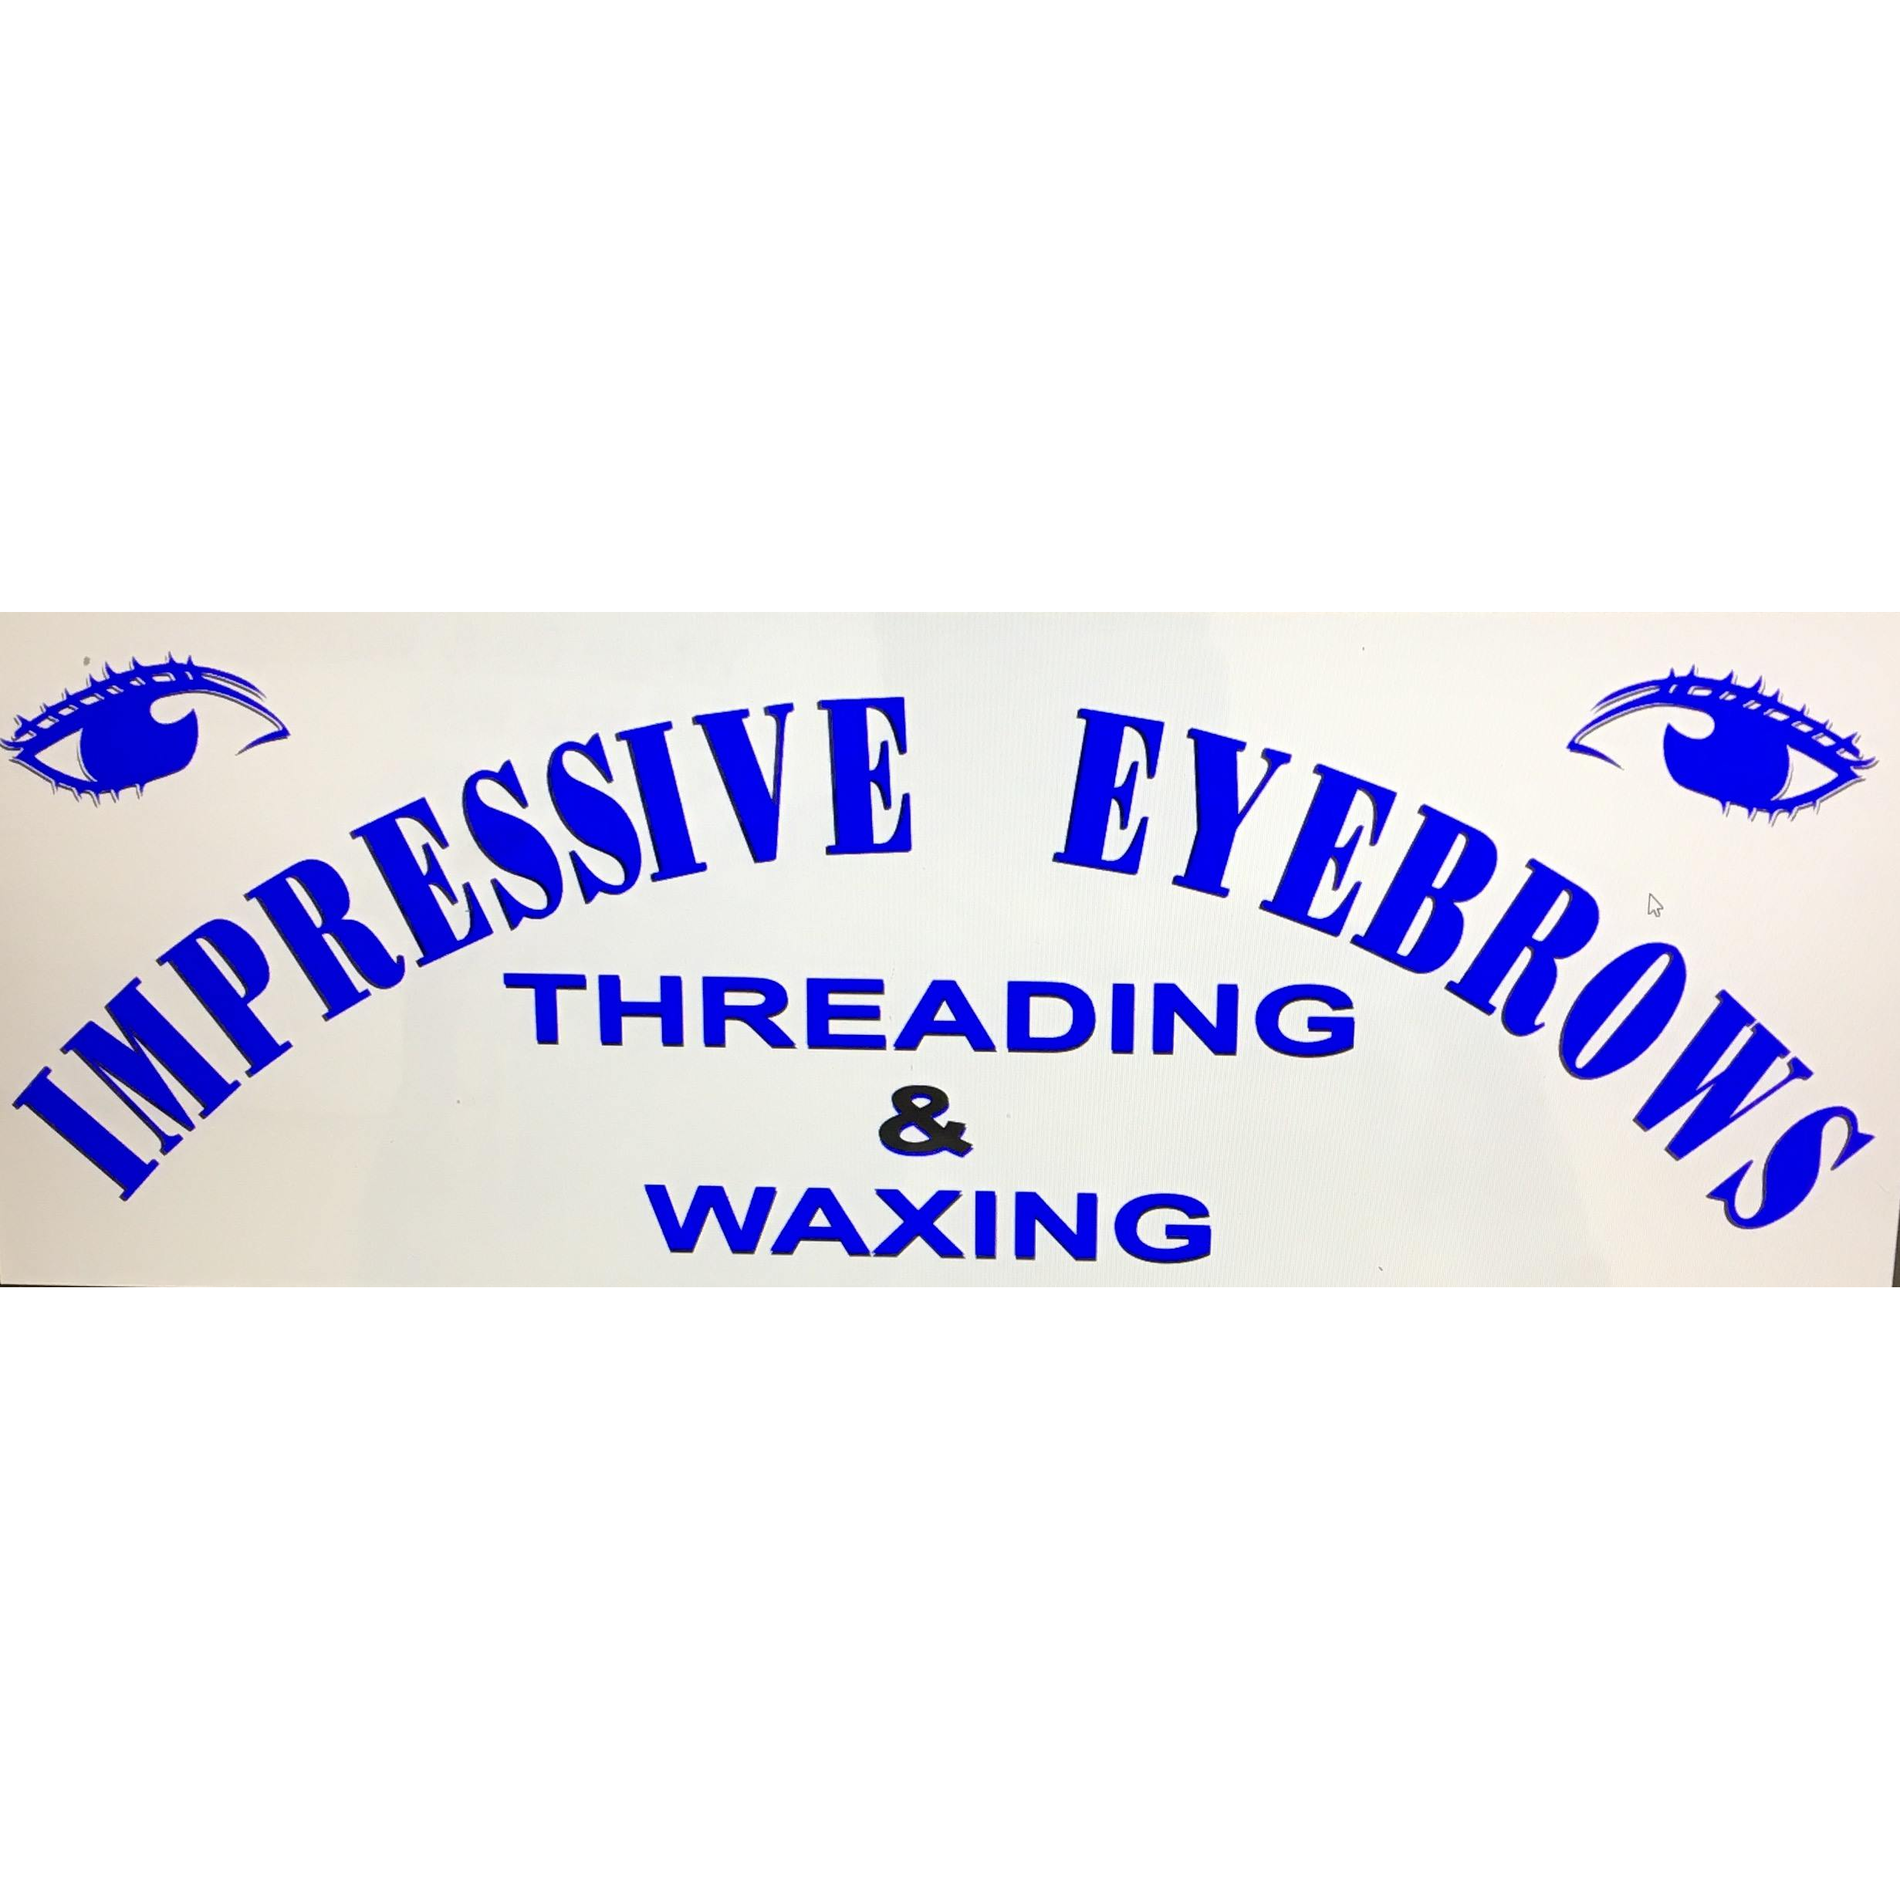 Impressive Eyebrows Threading/Waxing B (by the University of West Georgia) image 6